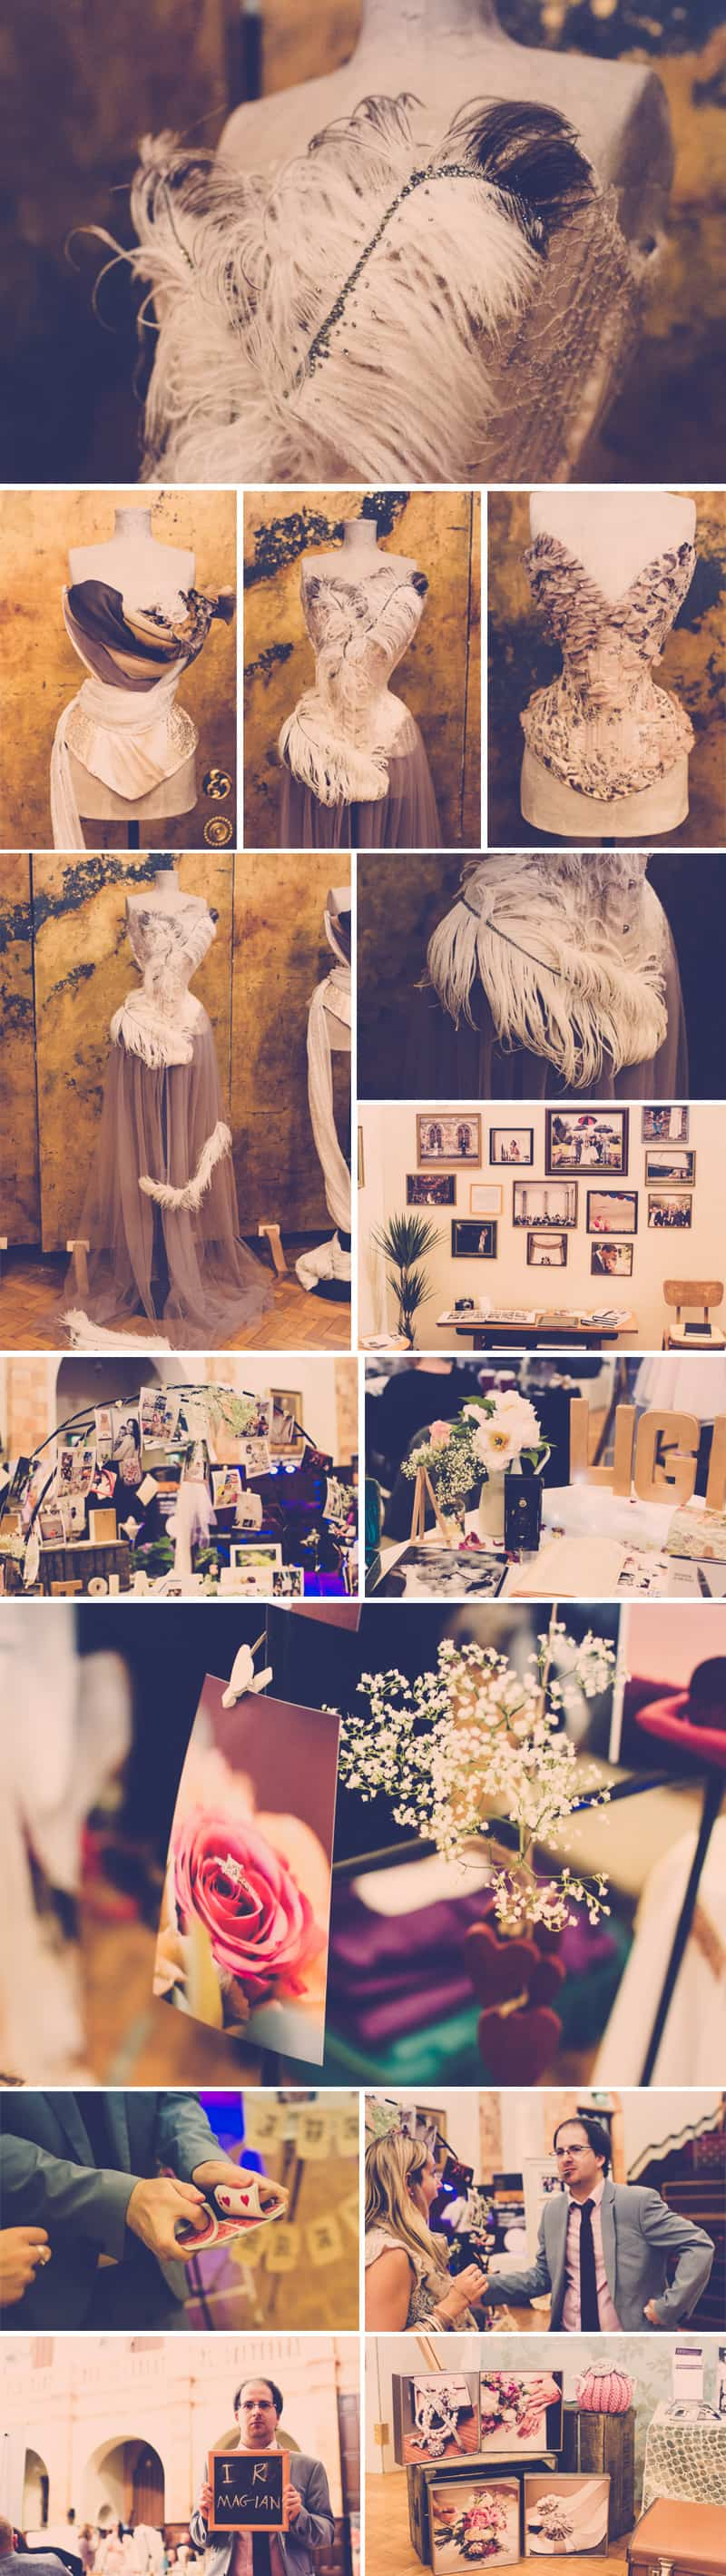 Designer Vintage Bridal Show Review 3